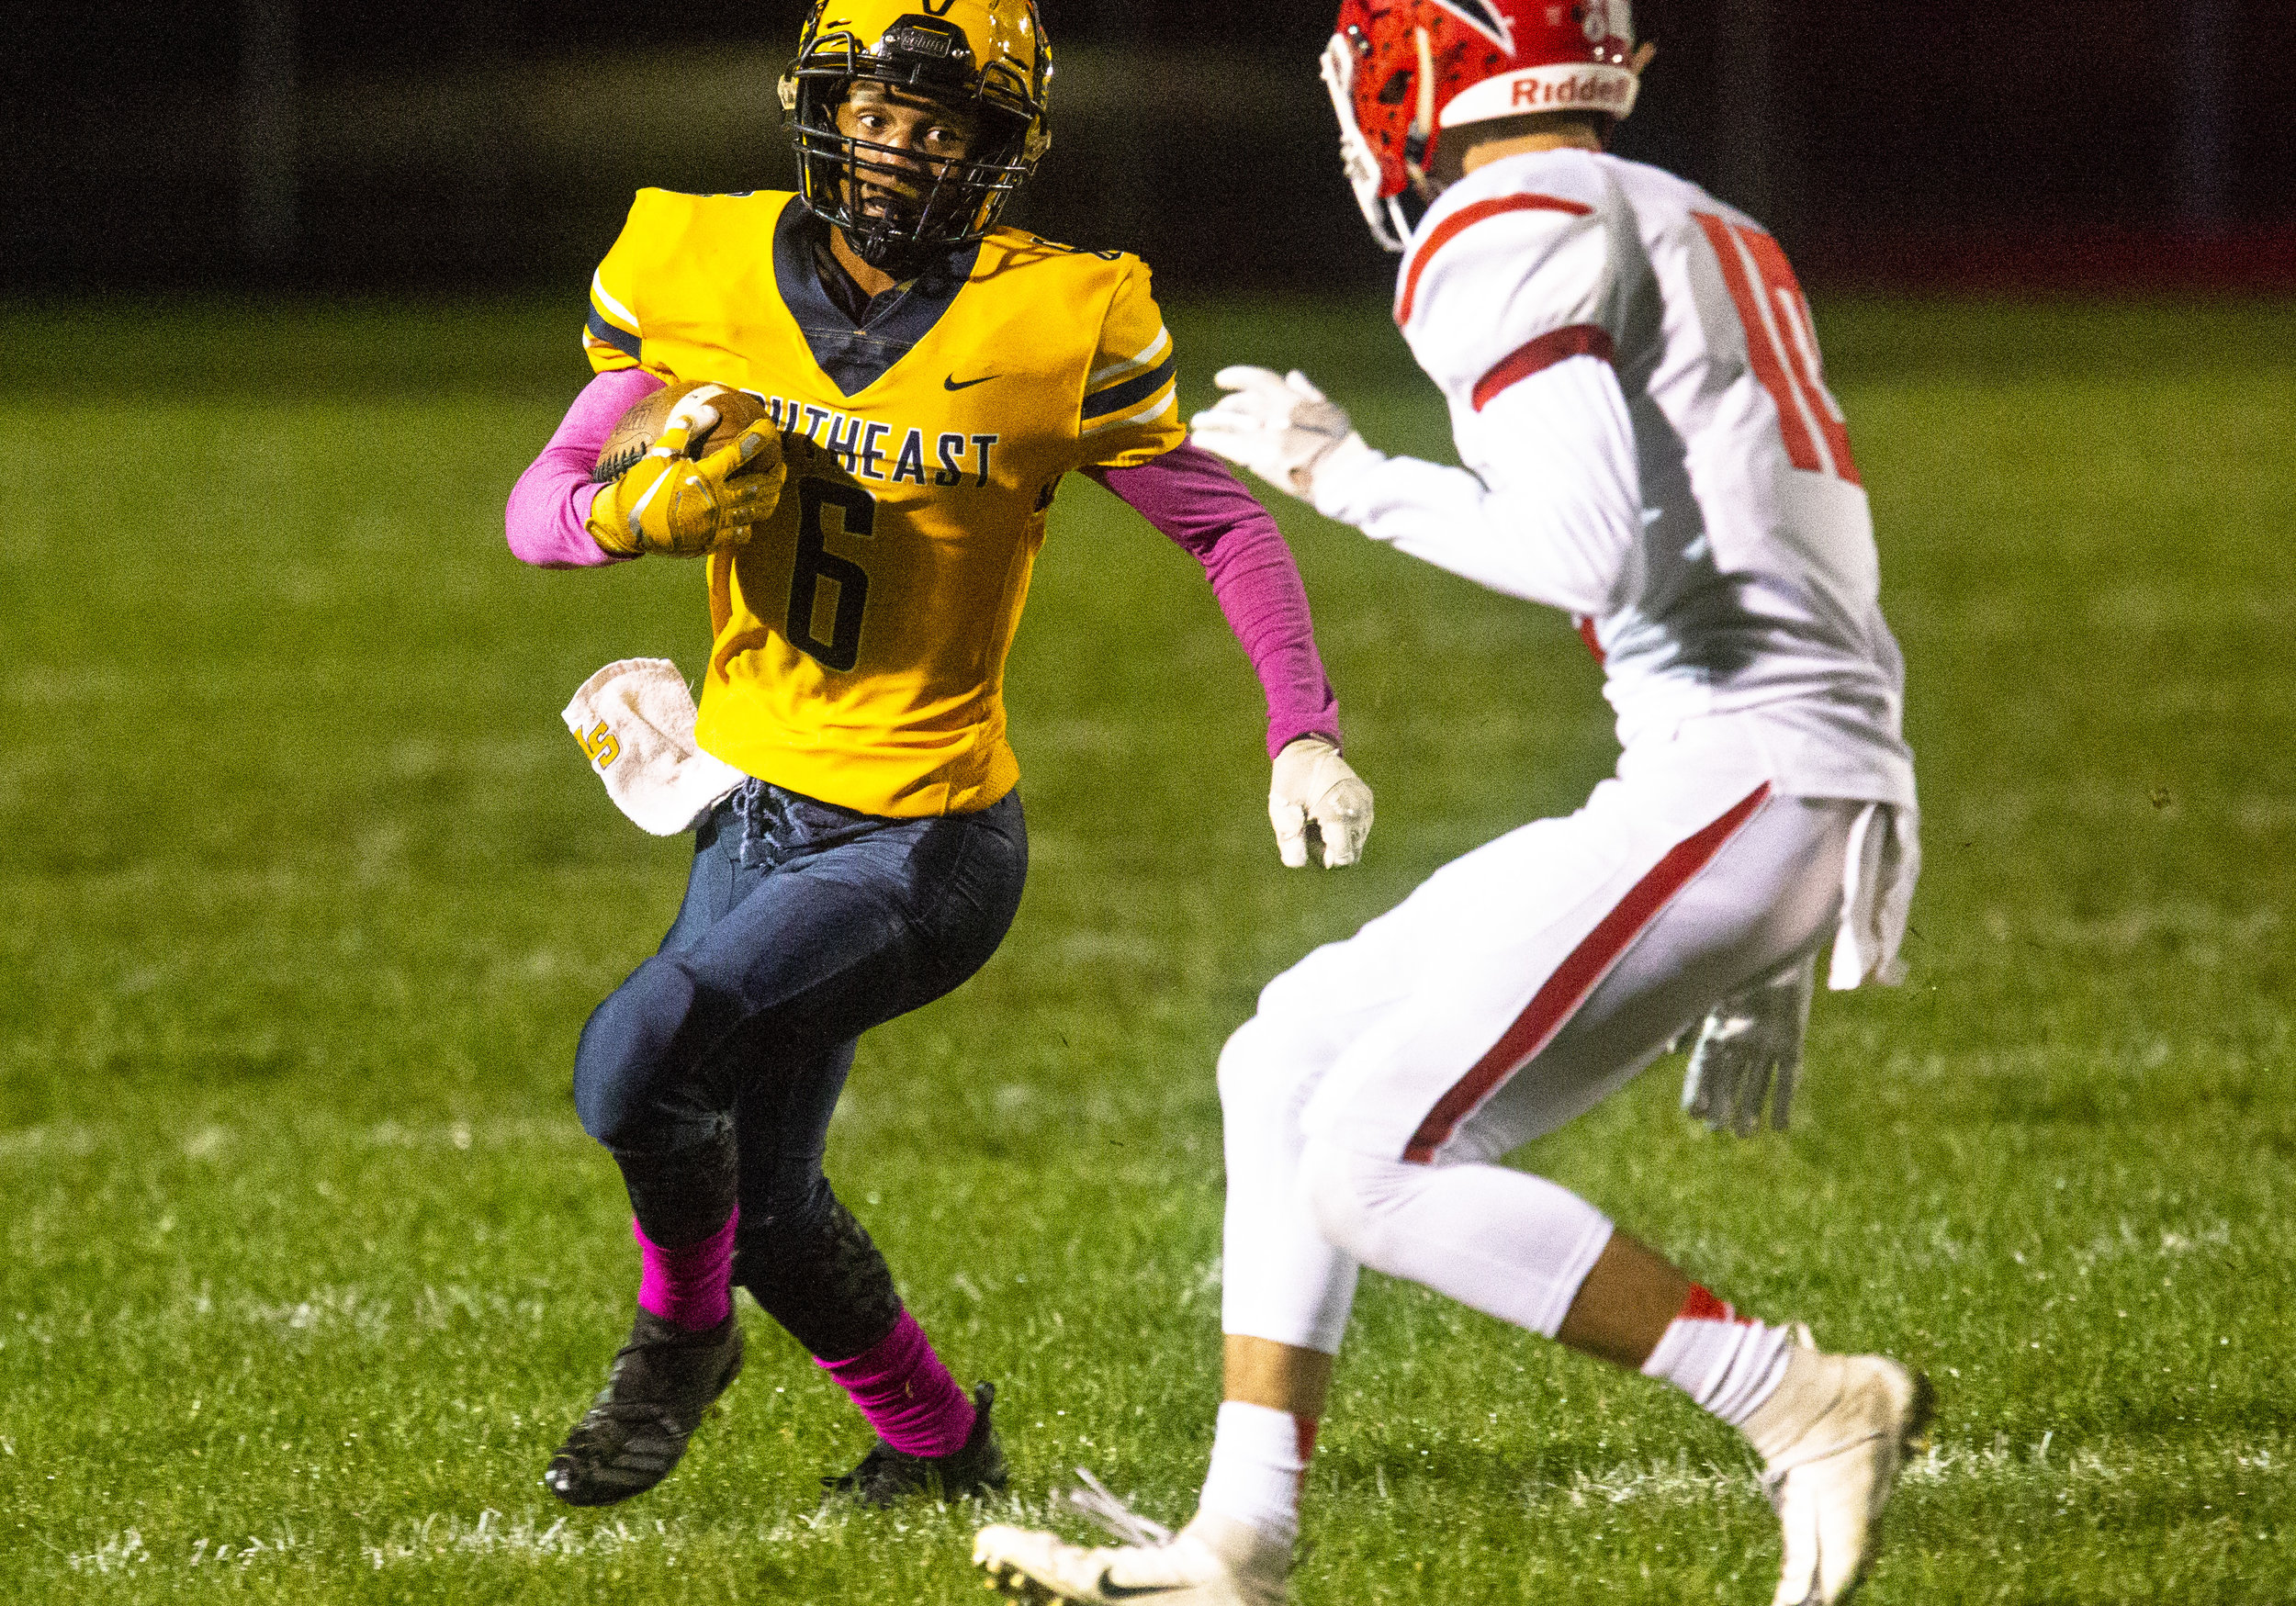 Southeast's Deon Fairlee faces Glenwood's Tyler Estes on Friday, Oct. 12, 2018 at Southeast High School's Spartan Field in Springfield, Ill. [Rich Saal/The State Journal-Register]